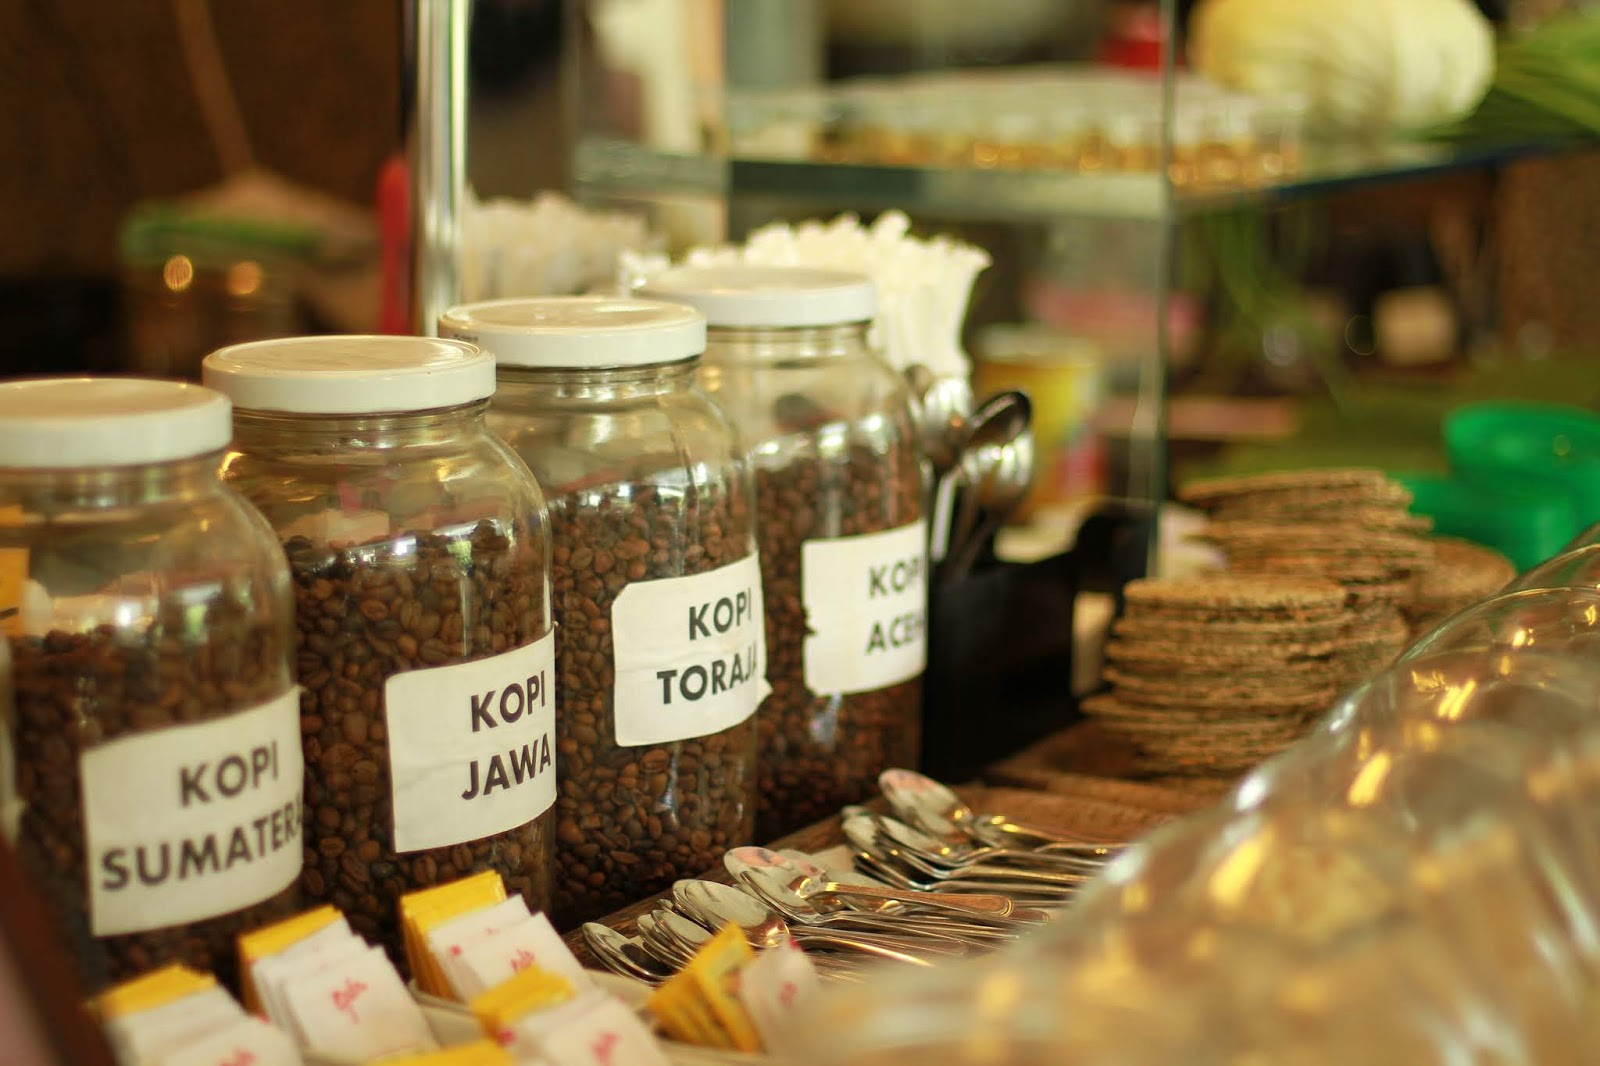 The Popular Coffee Products and Coffee Shops in Indonesia